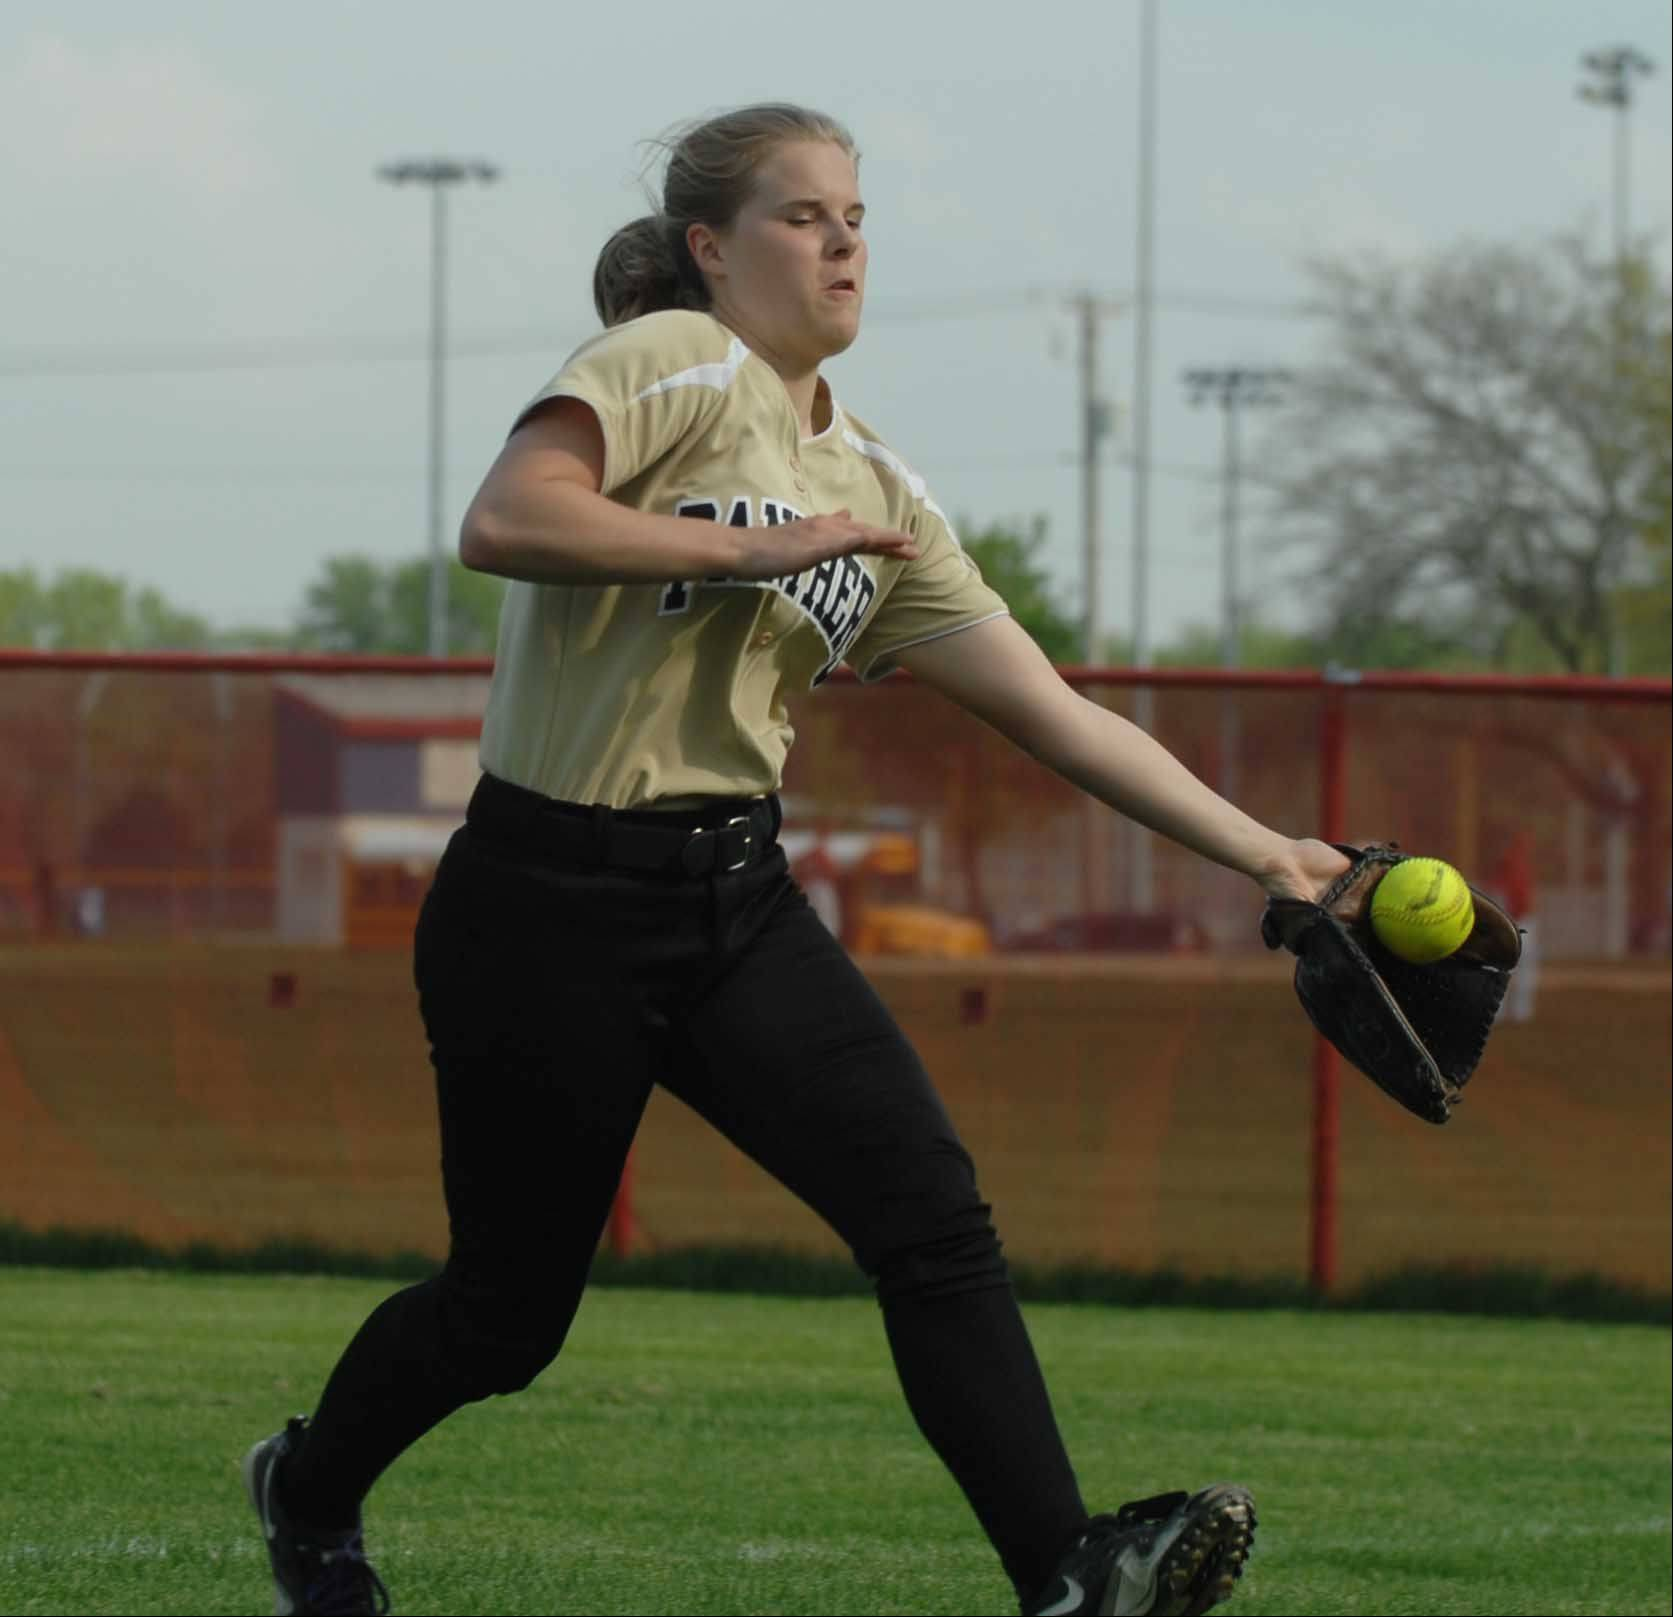 Amanda Manton of Glenbard North catches a hit to right field during the Glenbard North at Naperville Central softball game Wednesday.